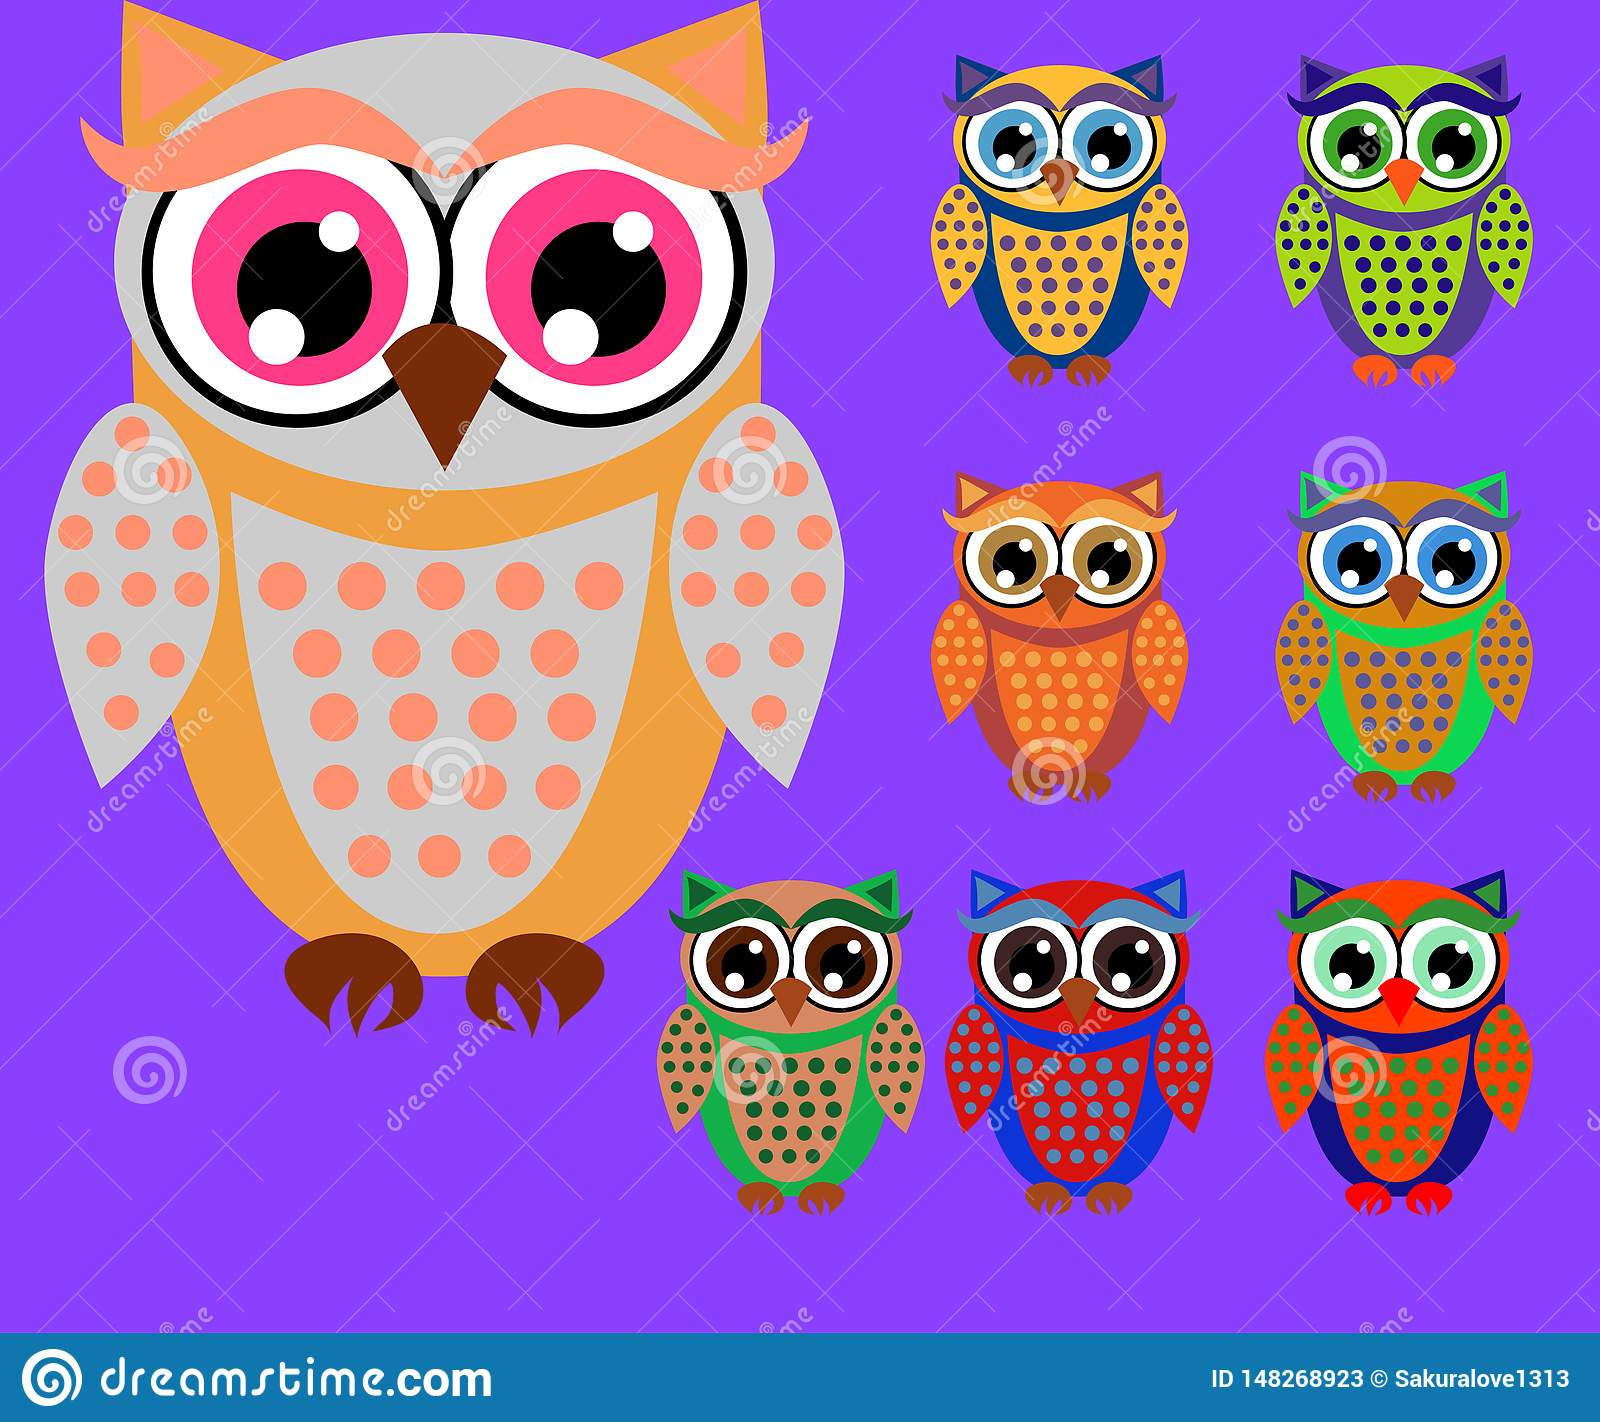 Cute cartoon owls set for baby showers, birthdays and invitation designs